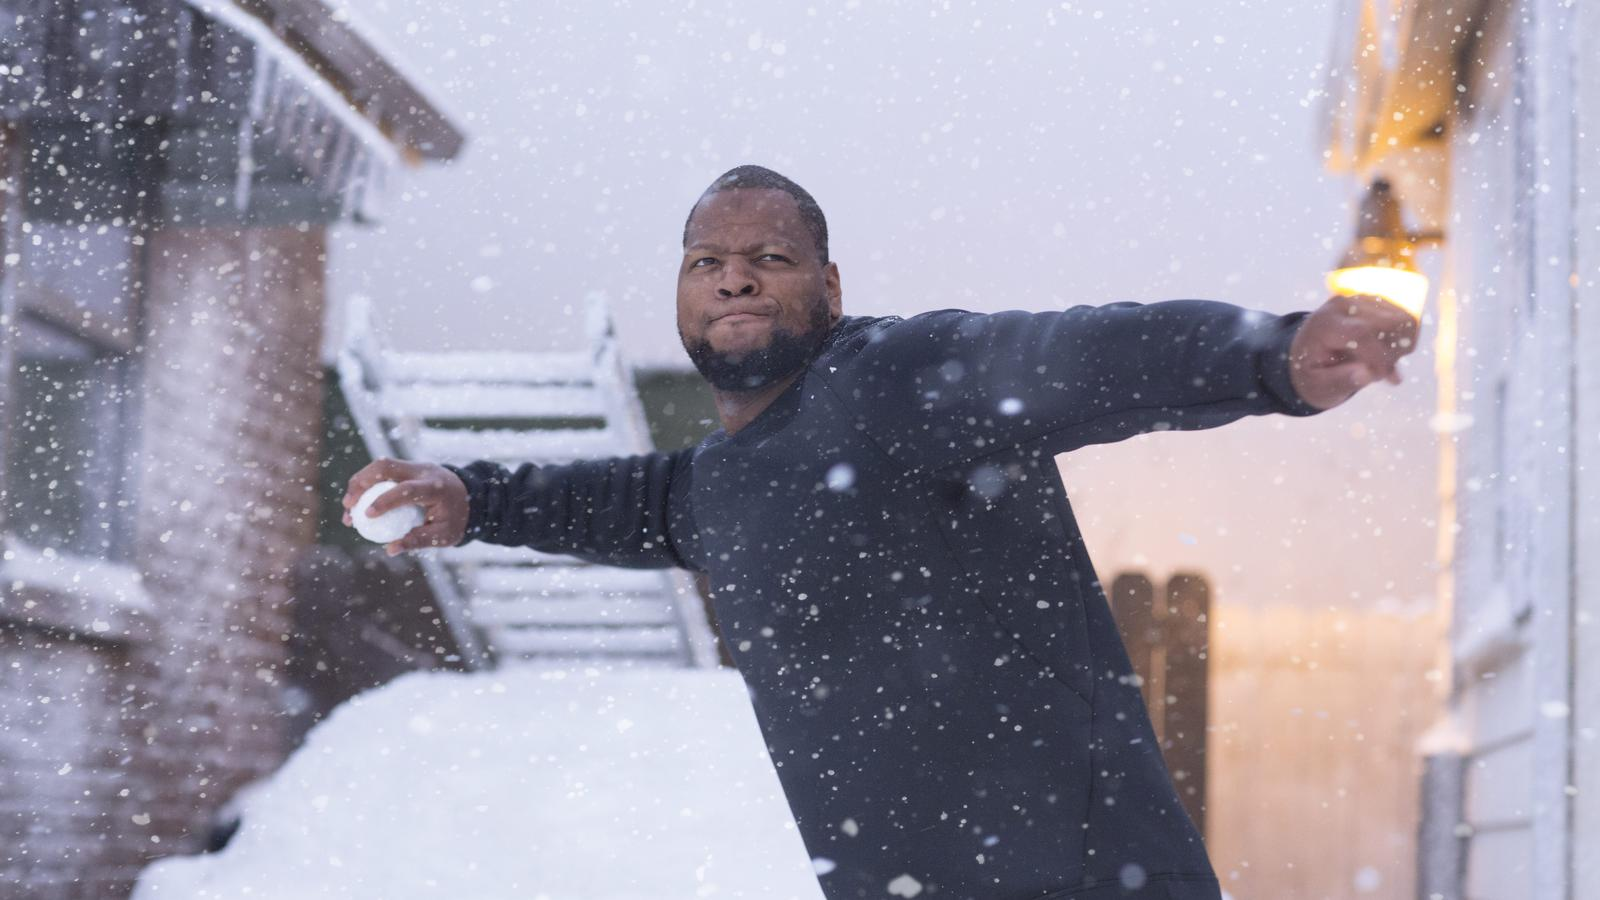 Nike Cold Weather Stills Ndamukong Suh Neighborhood 0138